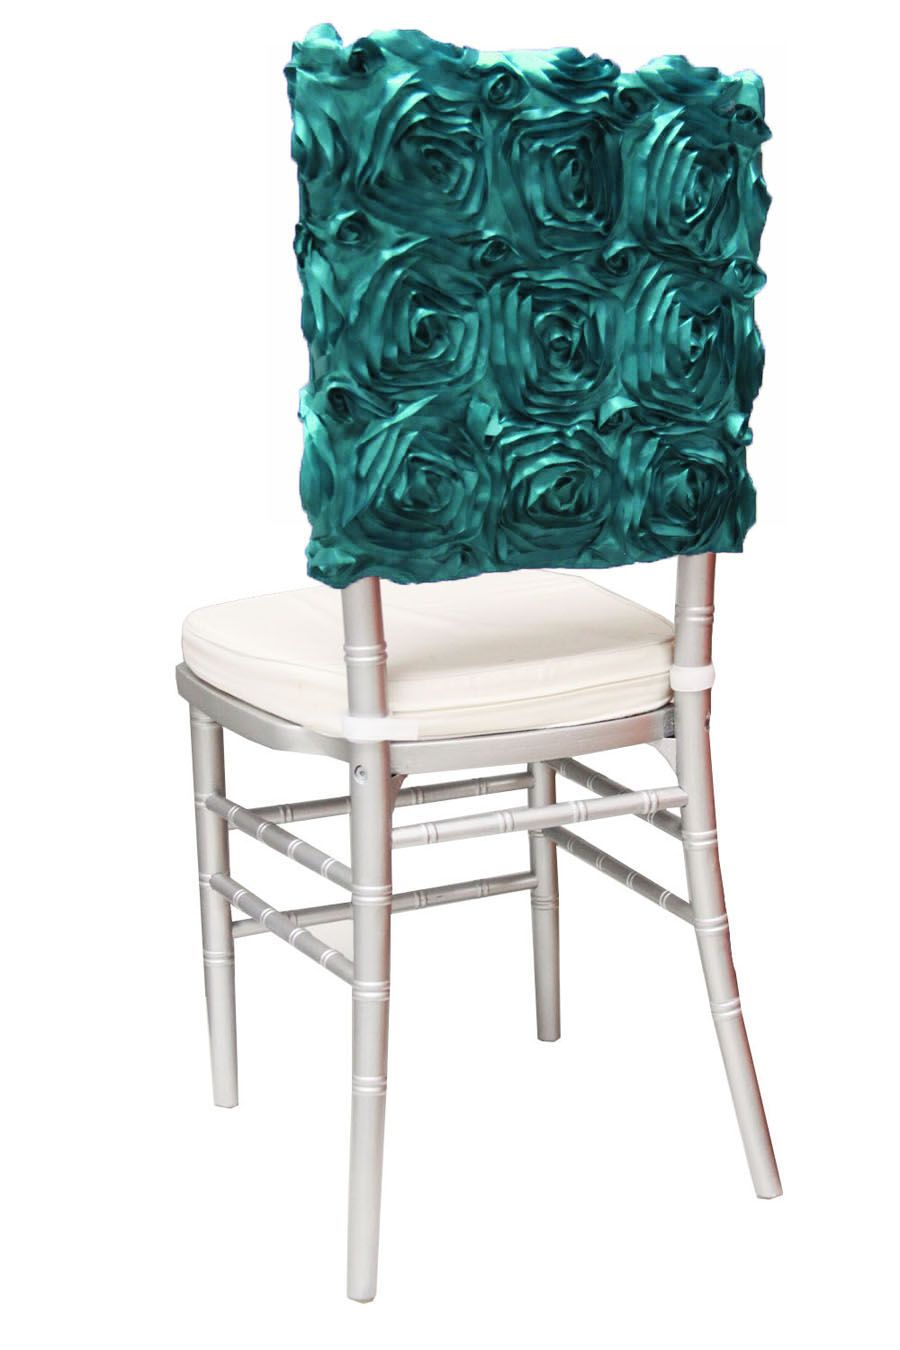 We Have A Wide Assortment Of Dark Turquoise Rosette Items At Www Cvlinens Com Chair Covers Wedding Chiavari Chairs Chiavari